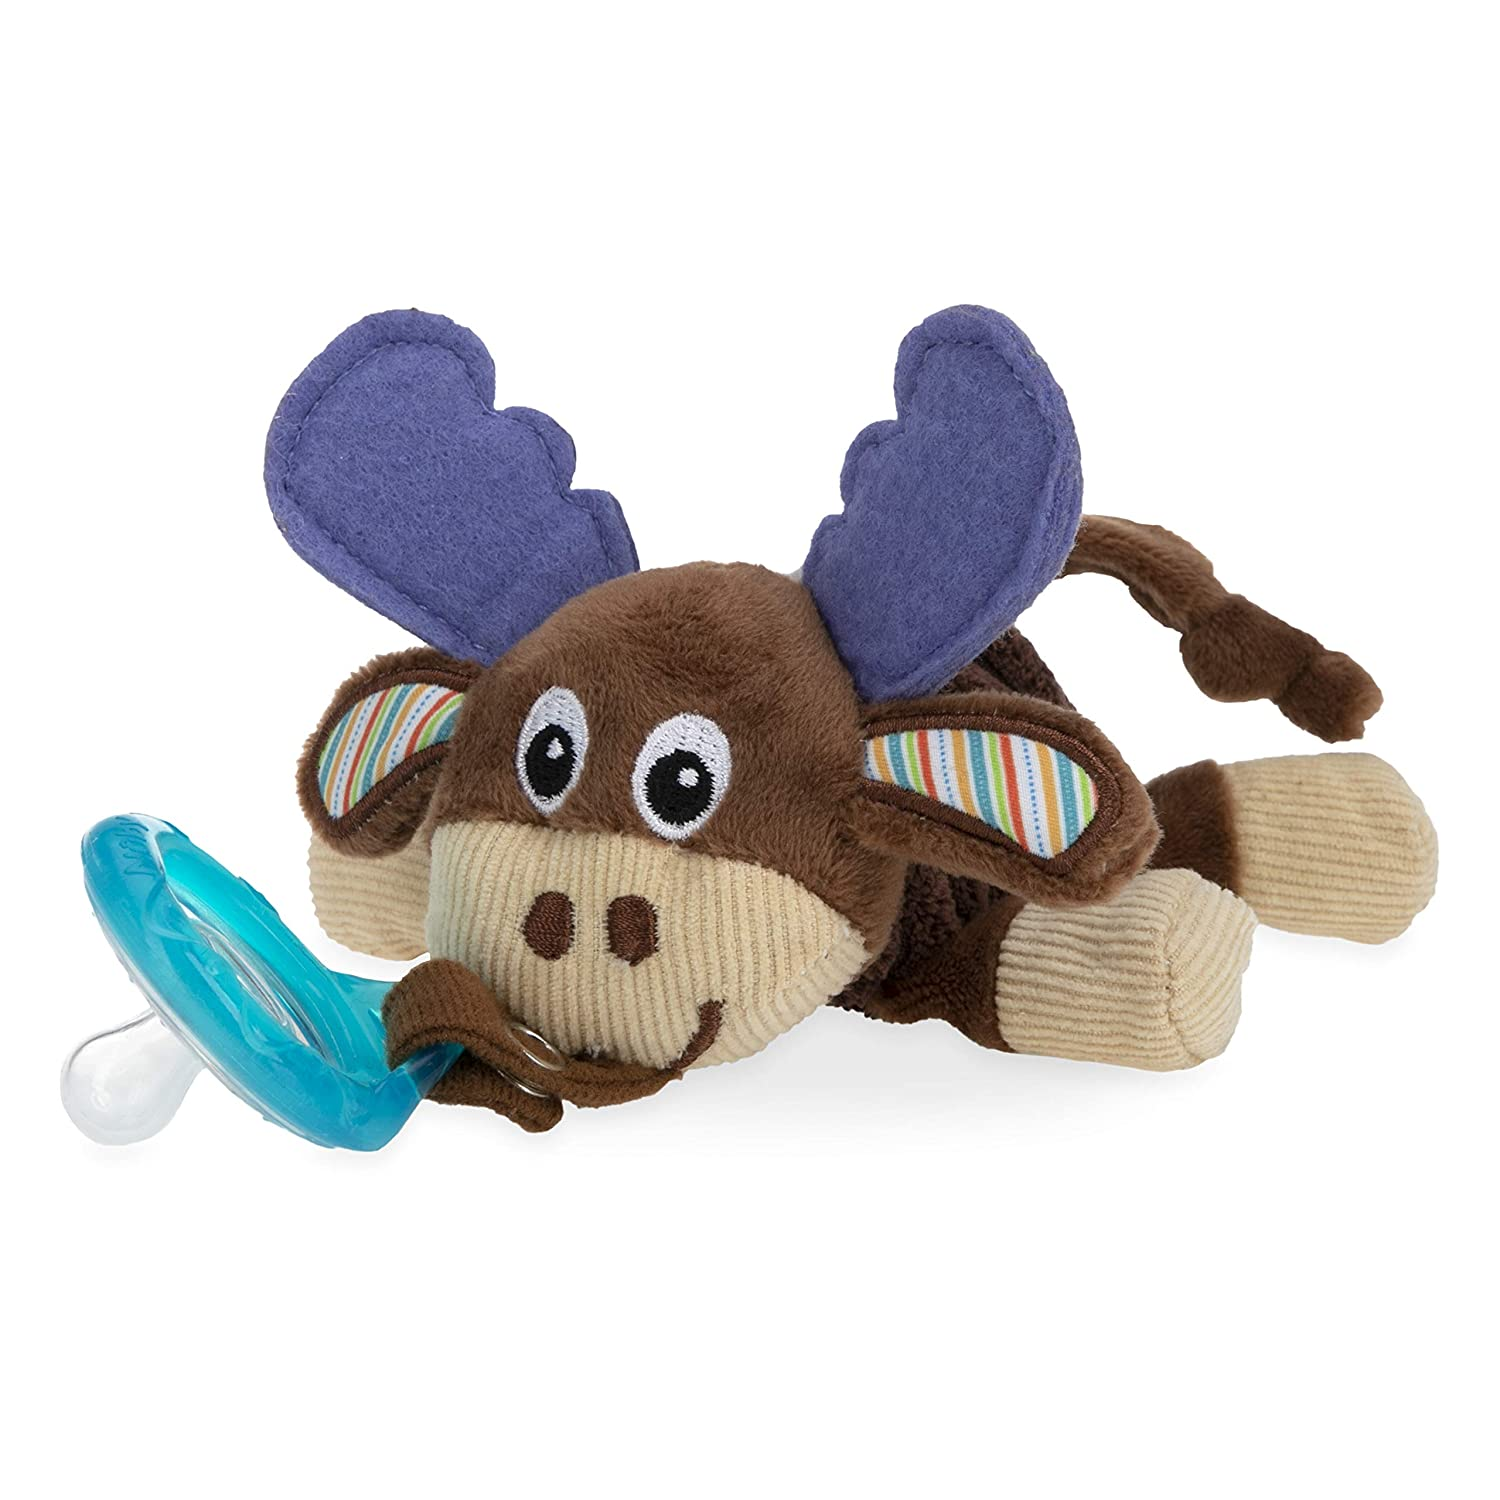 Nuby Calming Natural Flex Snuggleez Pacifier with Plush Combo Set for Cuddling with Comfort, 0M+, Moose